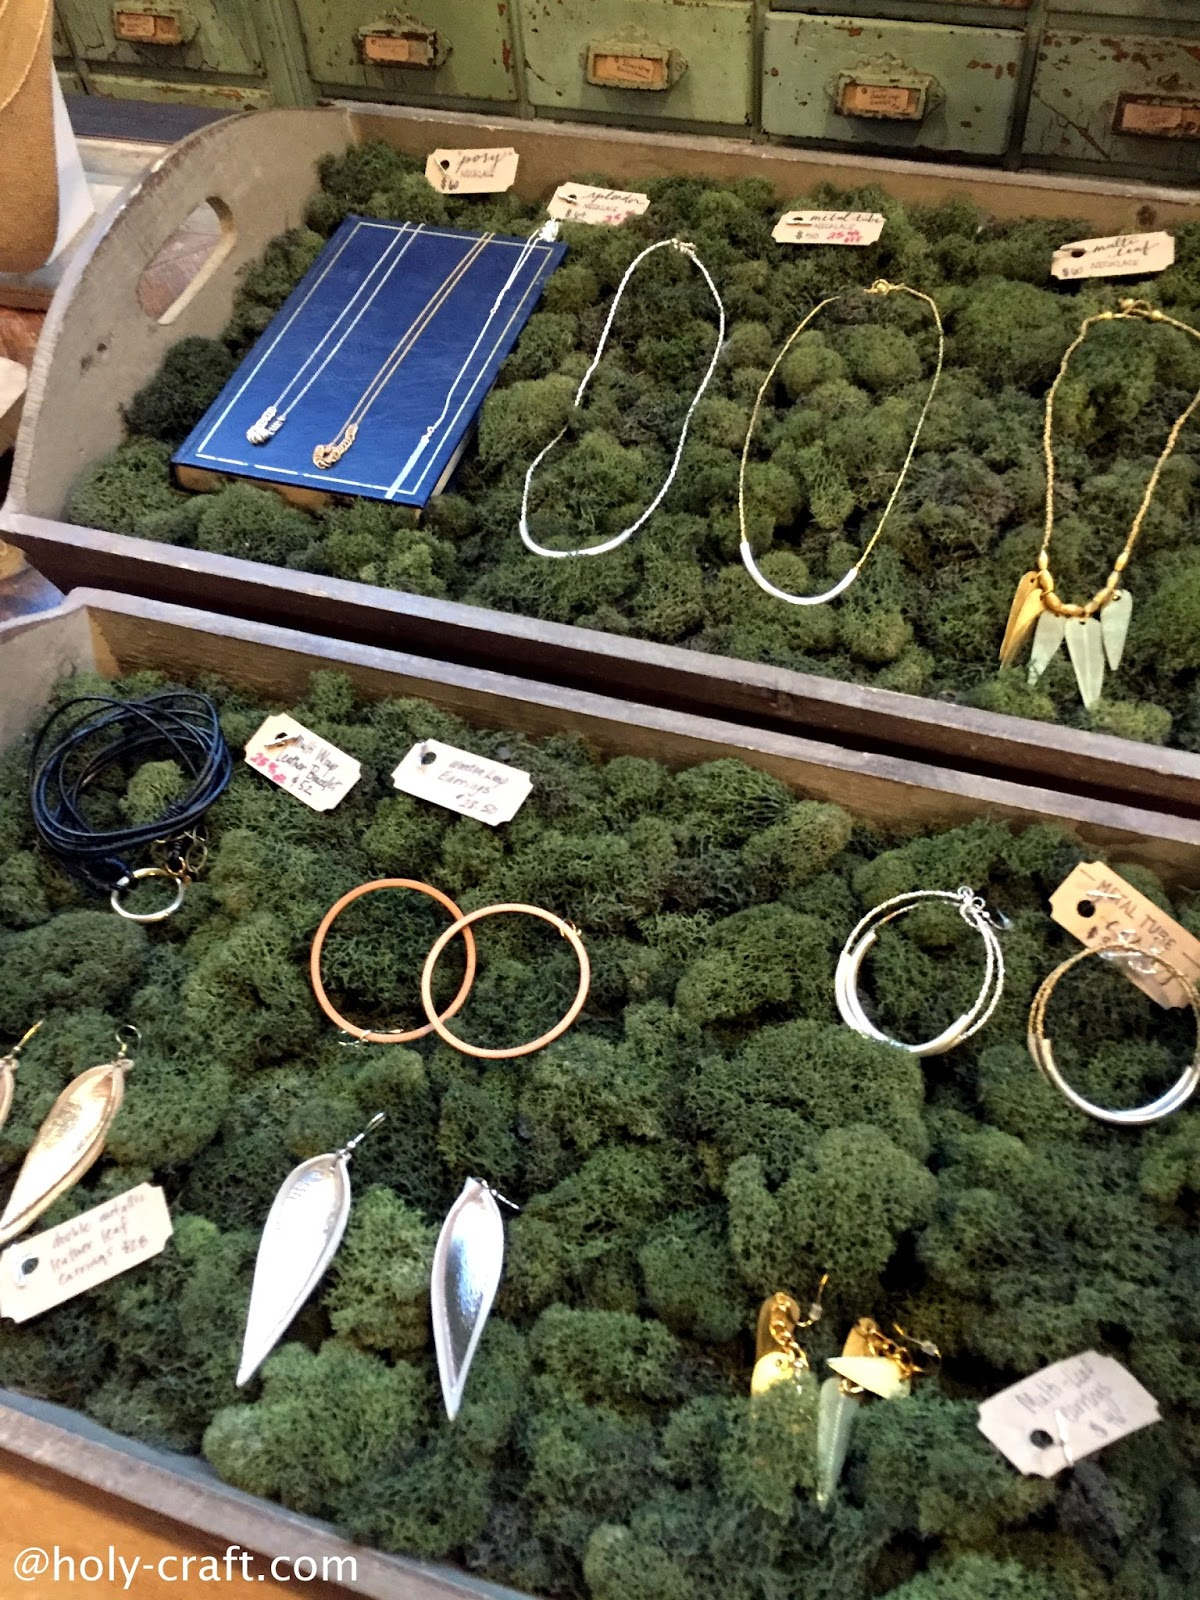 Magnolia Farms Jewelry 5 Things To Know Before You Visit Magnolia Market Datfeata Blog